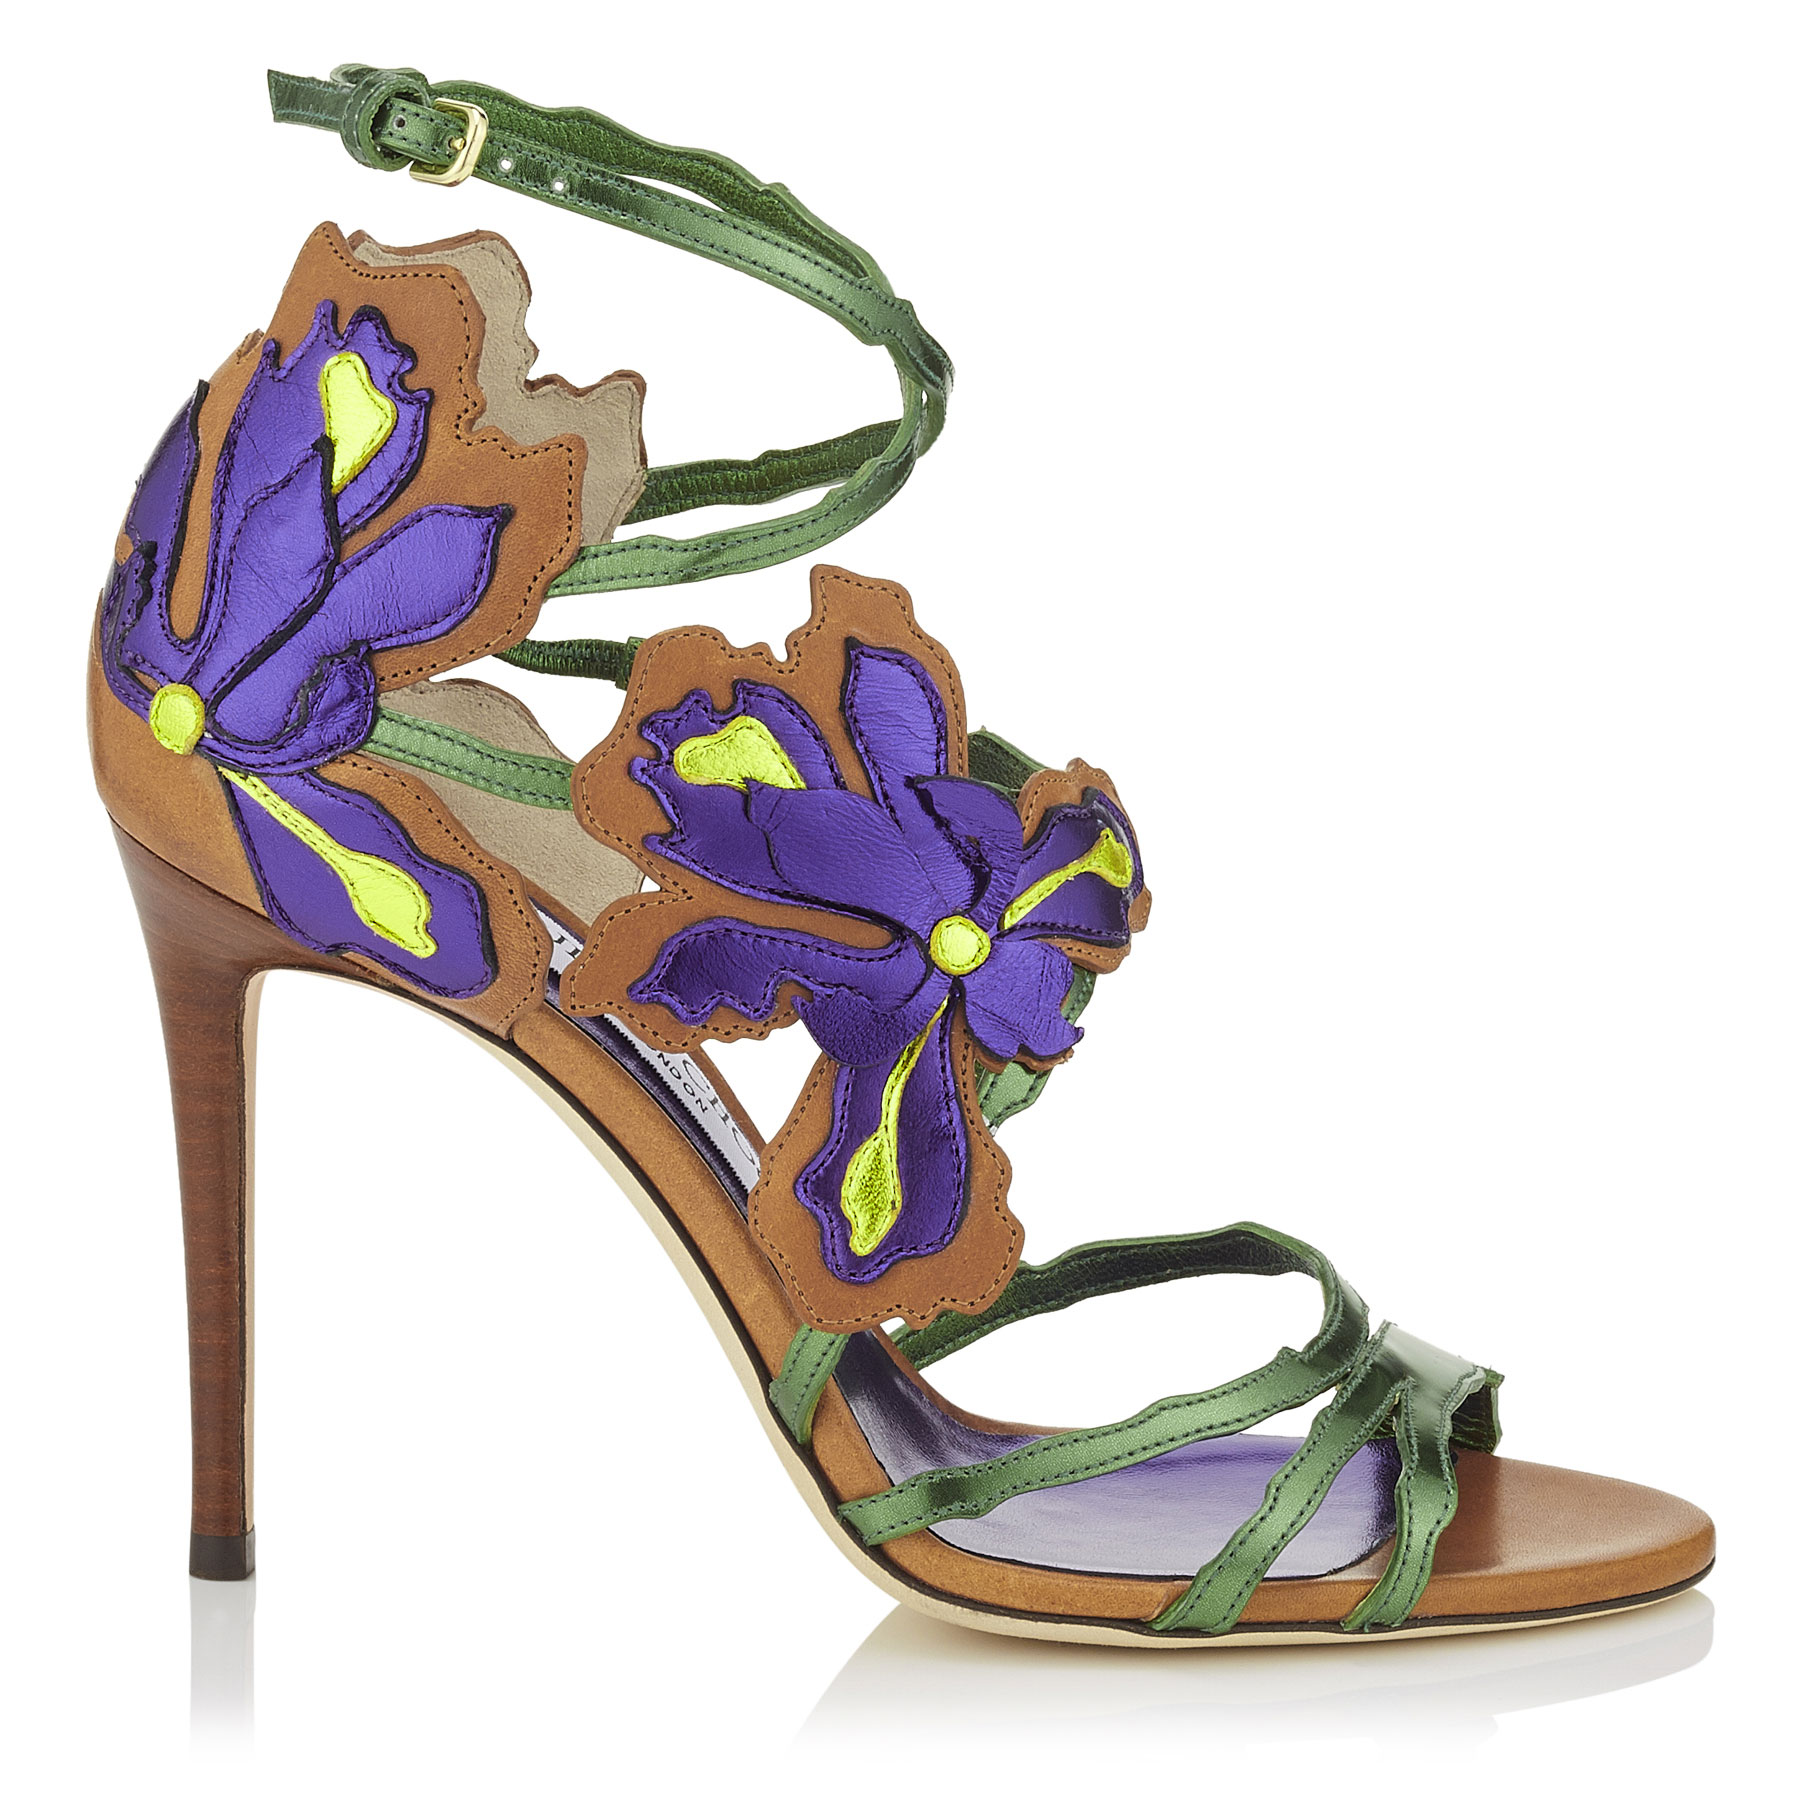 LOLITA 100 Canyon Mix Mirror Leather and Vaccetta Sandals